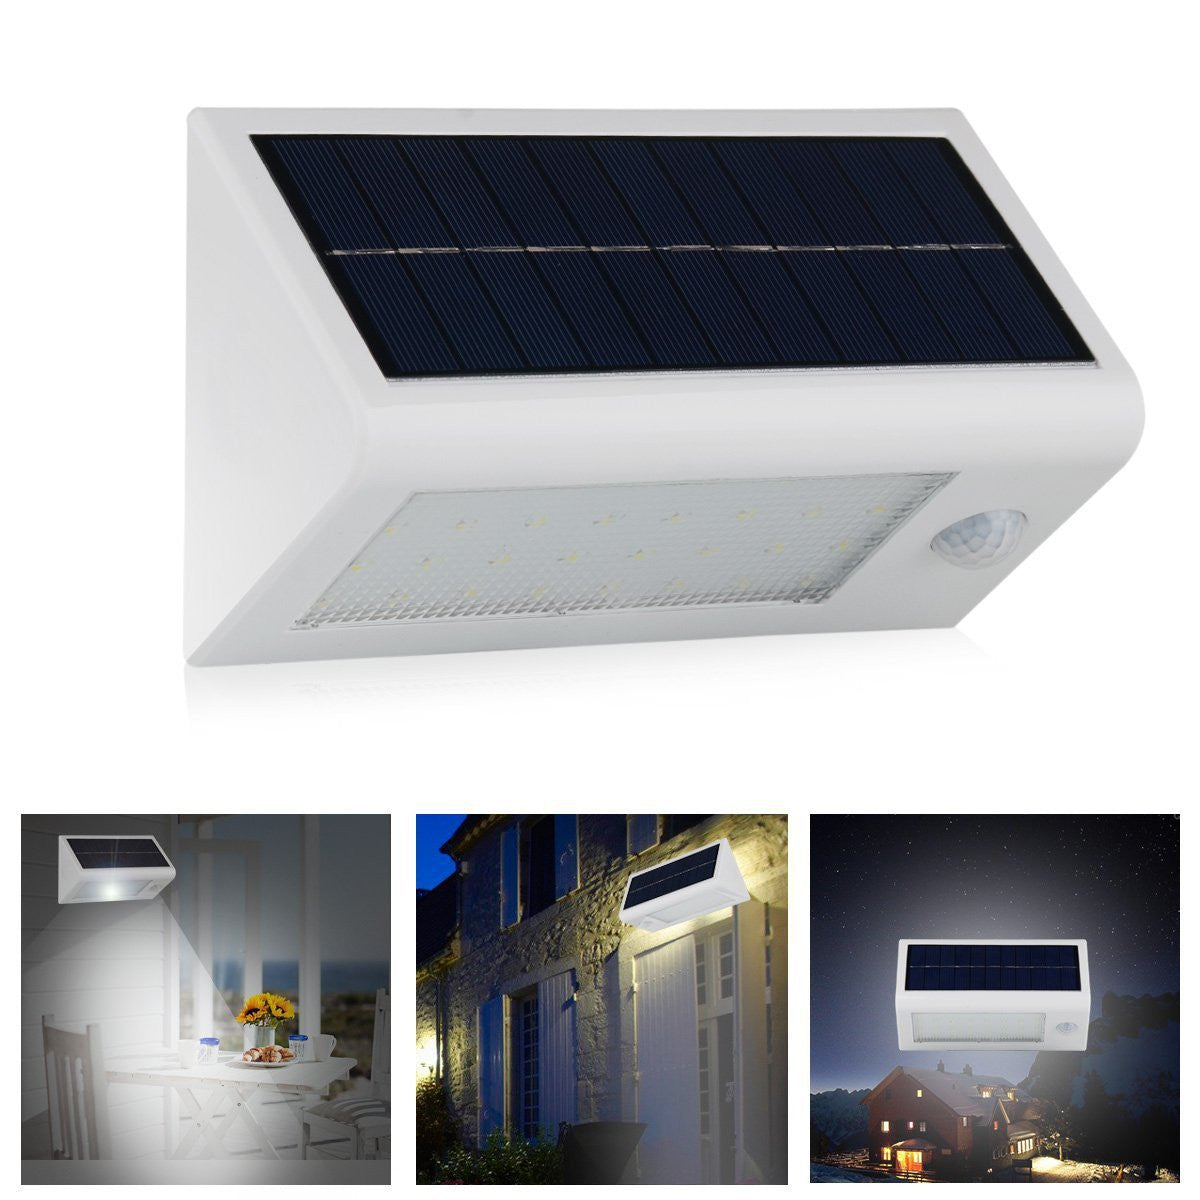 Solar lights bright 20led solar power led security lights with solar lights bright 20led solar power led security lights with motion sensor wireless waterproof wall lights for diveway patio garden path 1pack aloadofball Choice Image